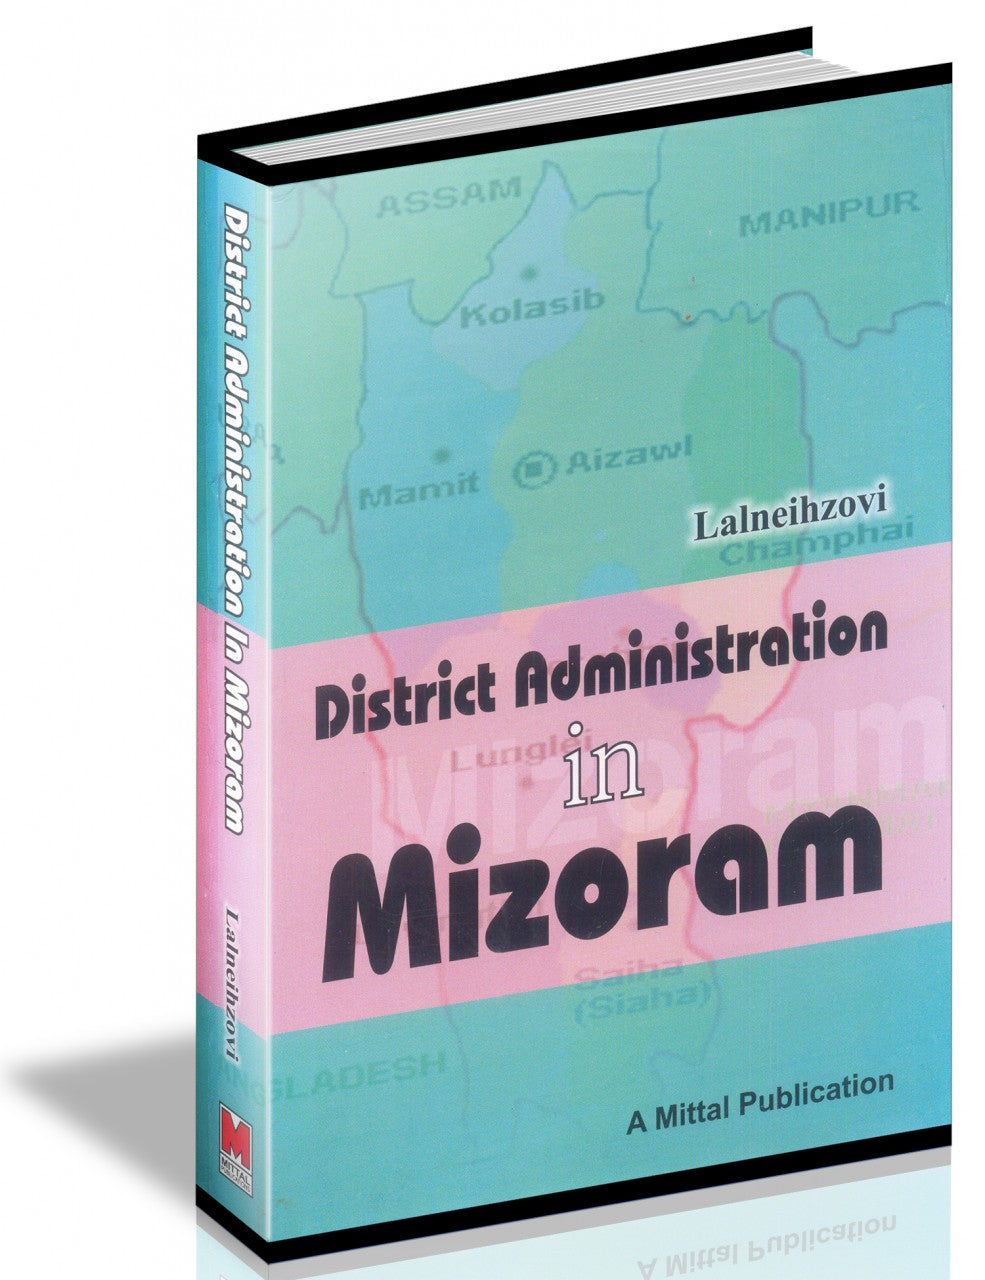 District Administration in Mizoram